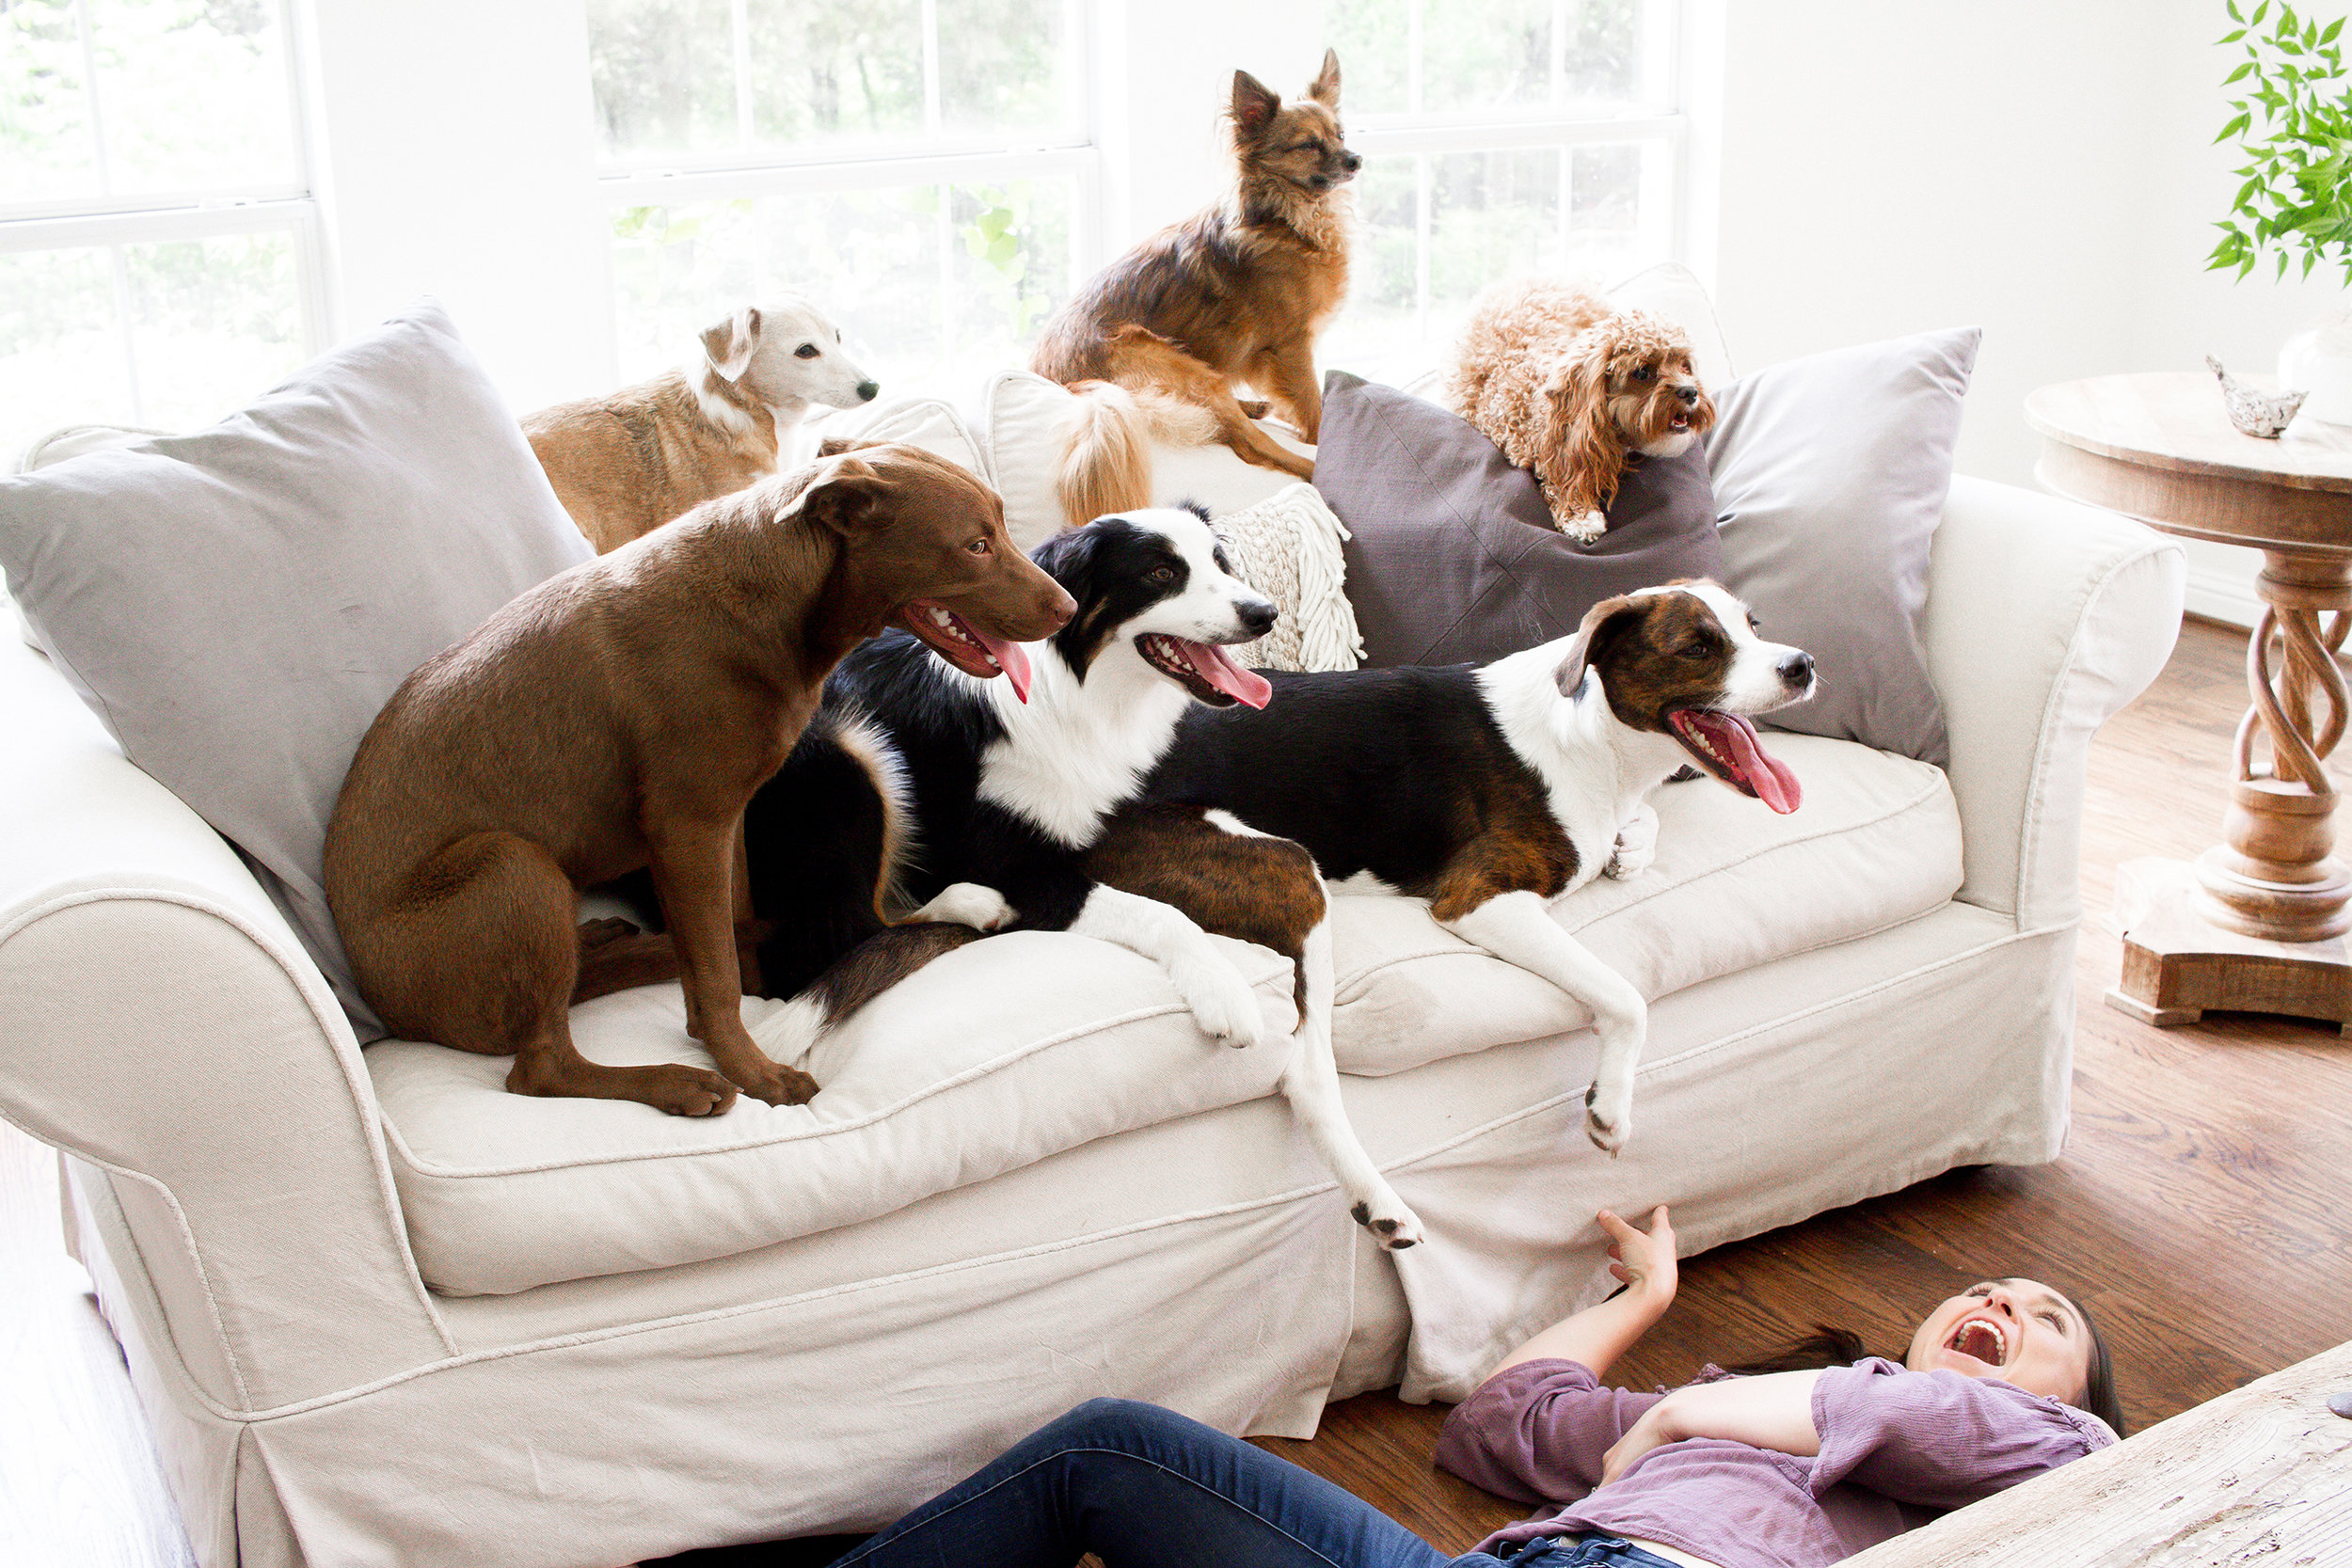 Dogs and Decor 14.jpg